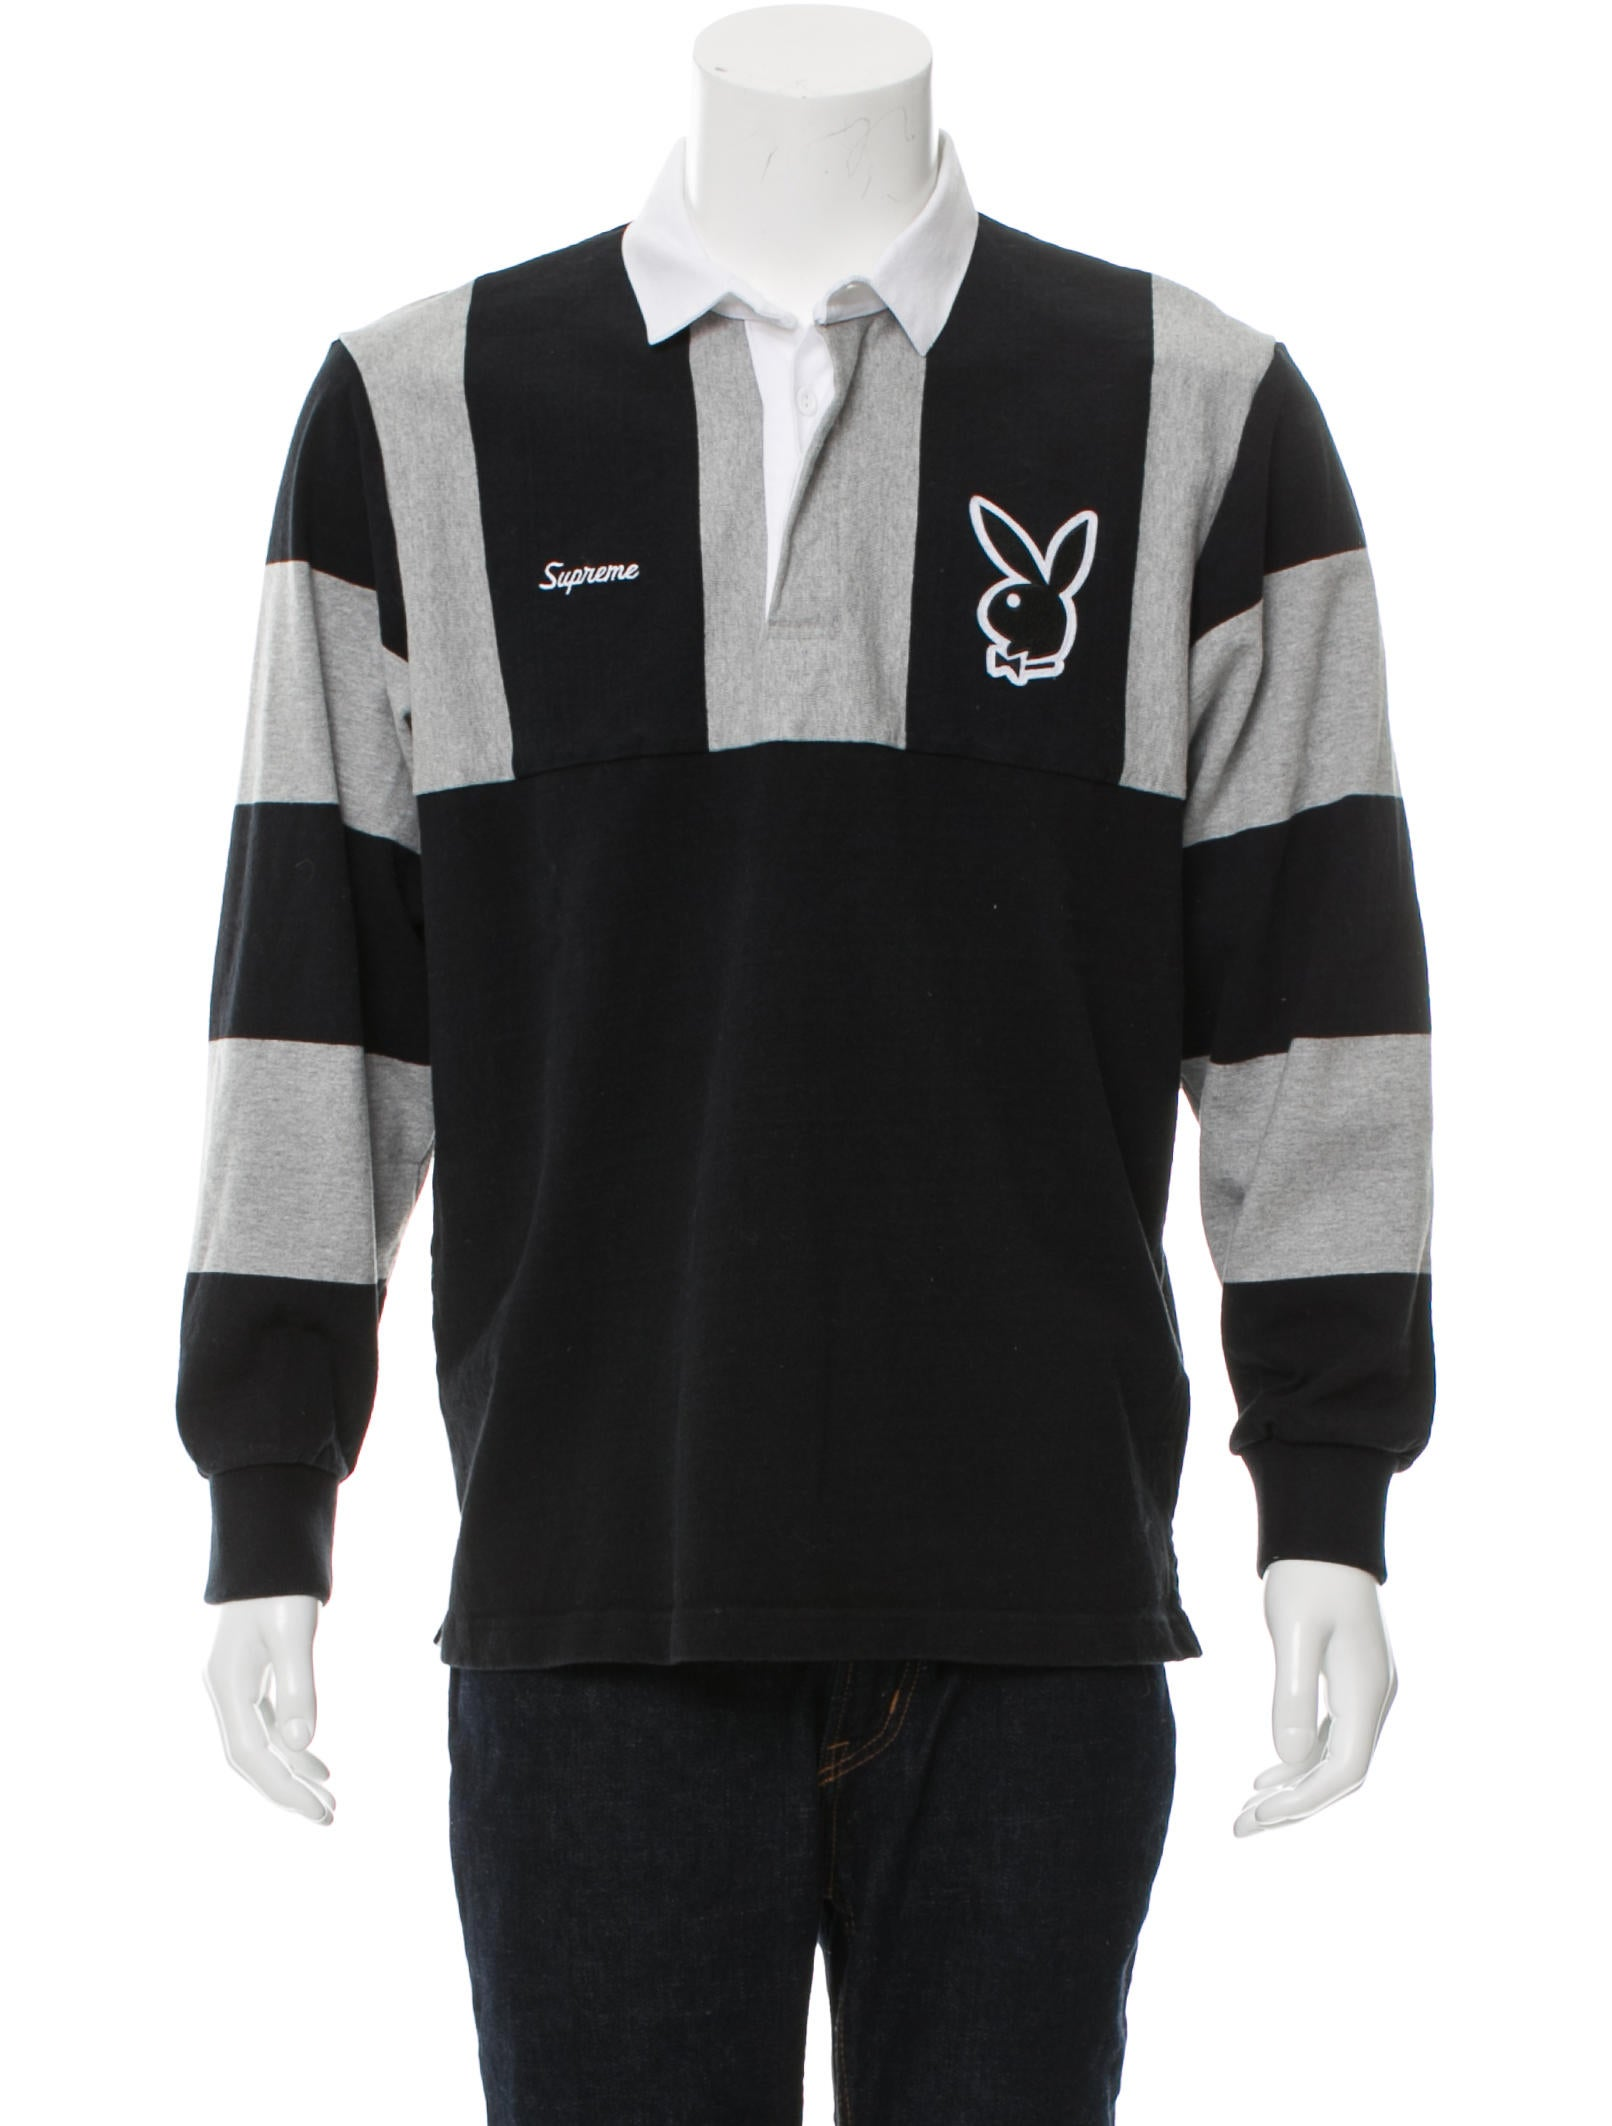 d760d0fe04d Supreme Playboy Rugby Polo Shirt - Clothing - WSPME20993 | The RealReal